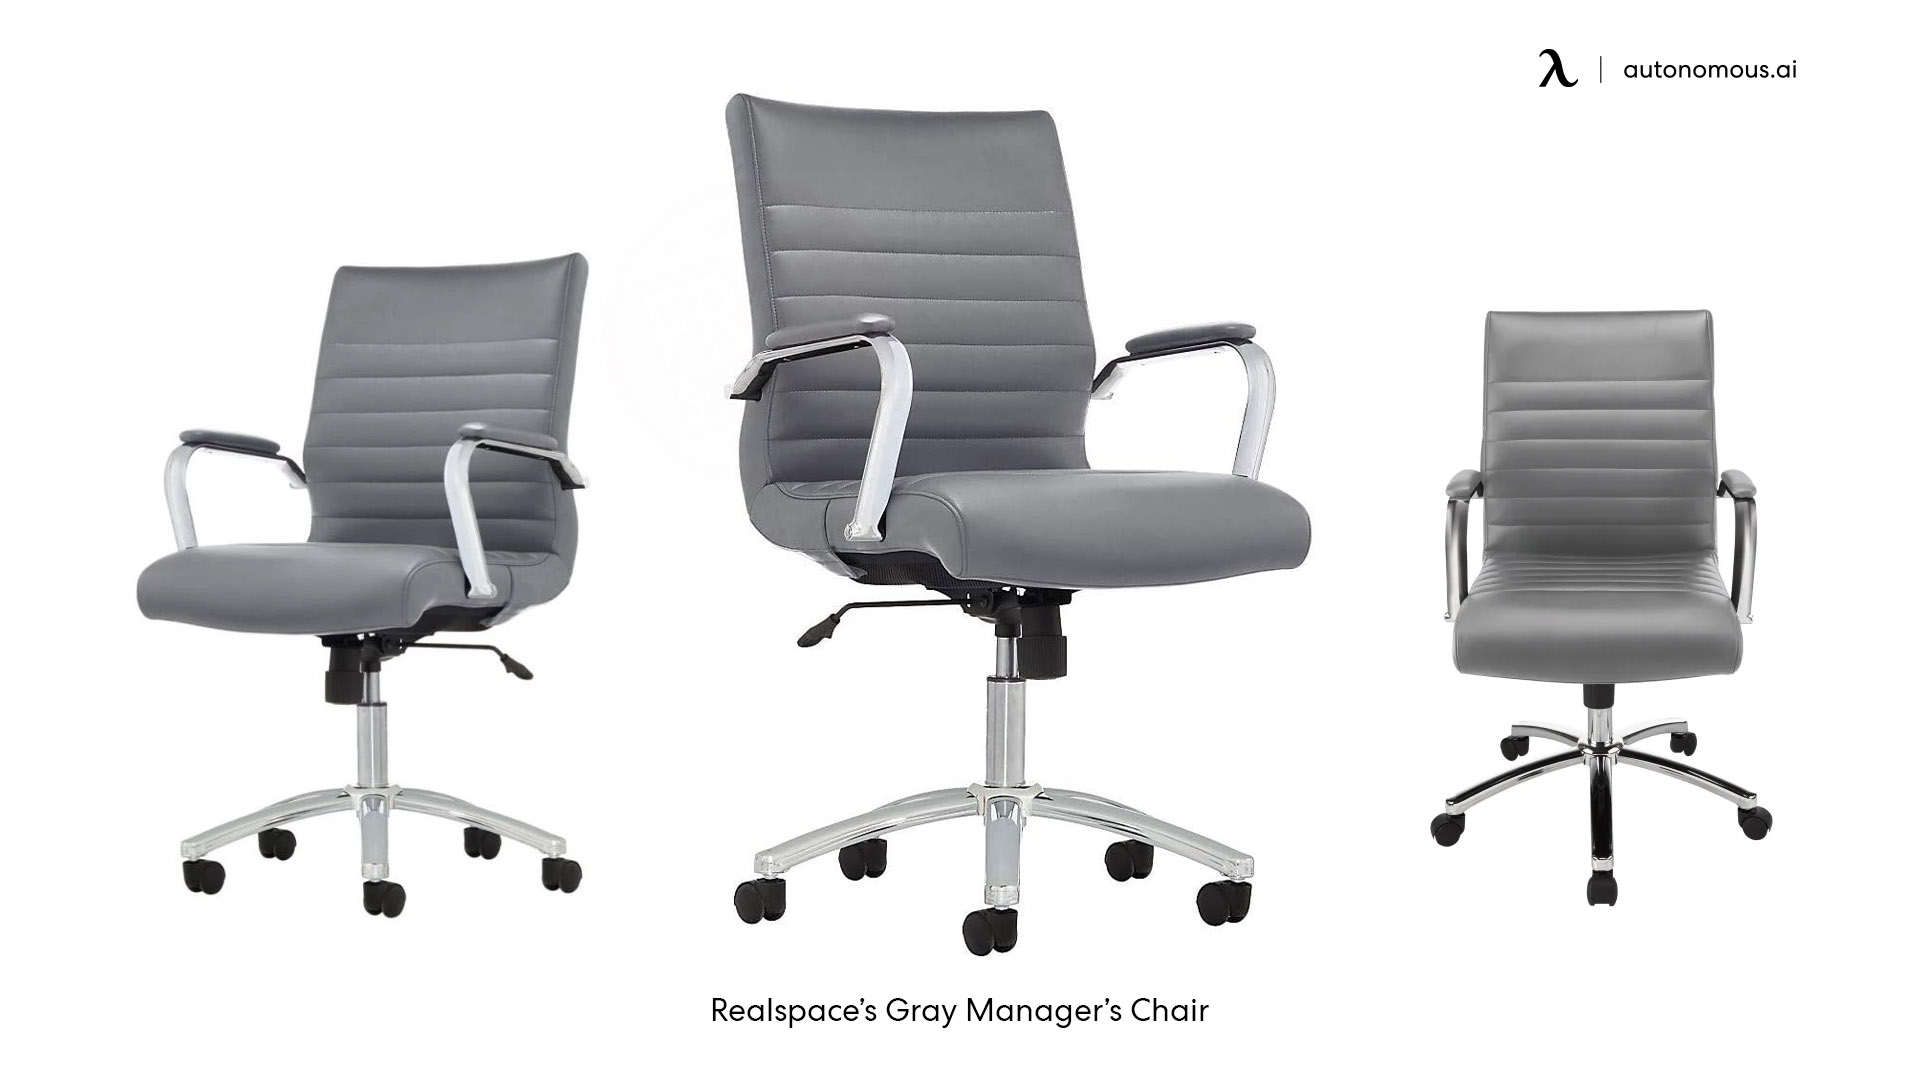 Realspace's Gray Manager's Chair